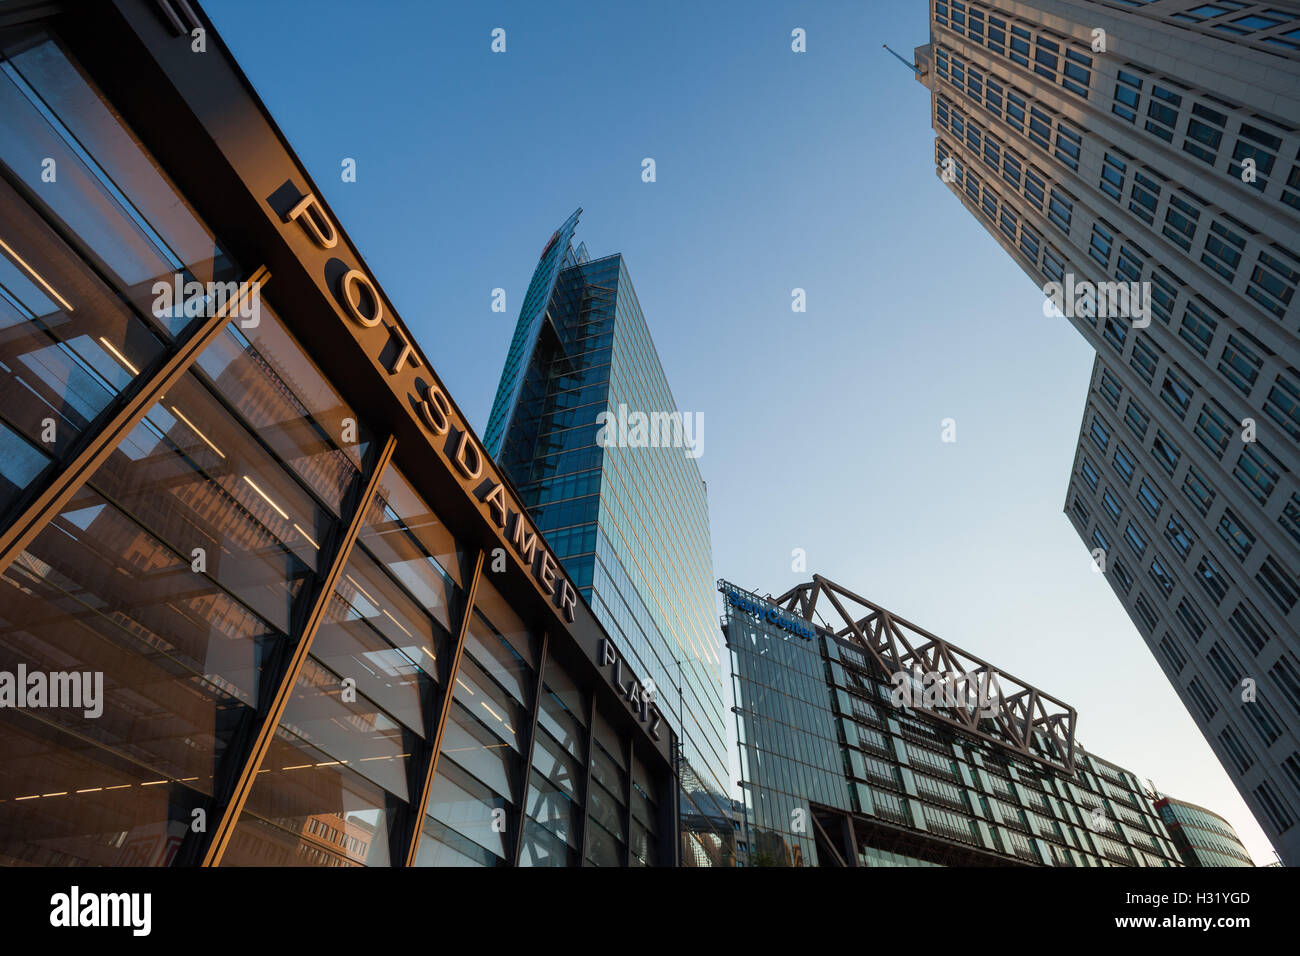 BERLIN - May 10: Station building and skyscrapers at Potsdamer Platz on May 10, 2016 in Berlin. Stock Photo